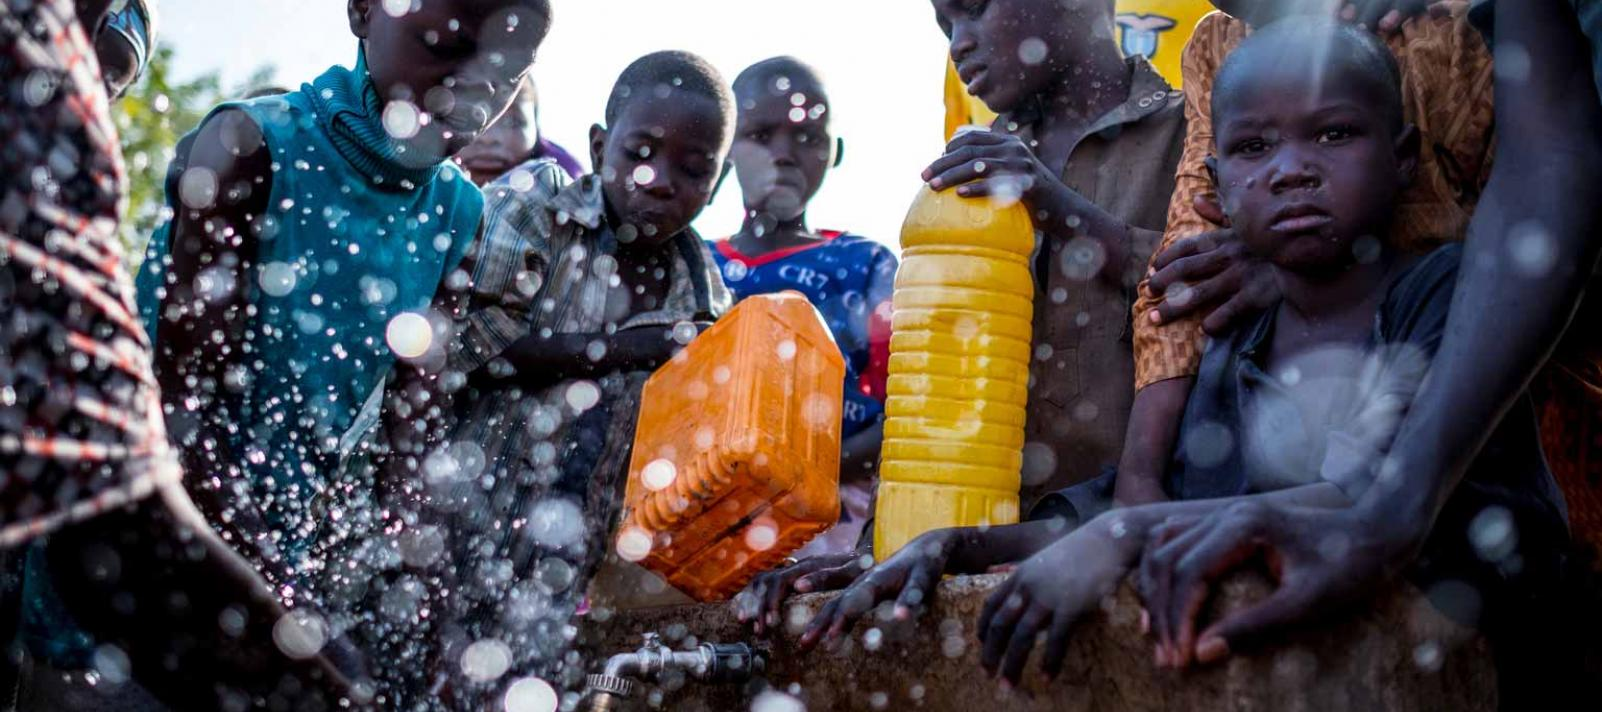 Water splashes as children fill jerrycans at an outdoor tap